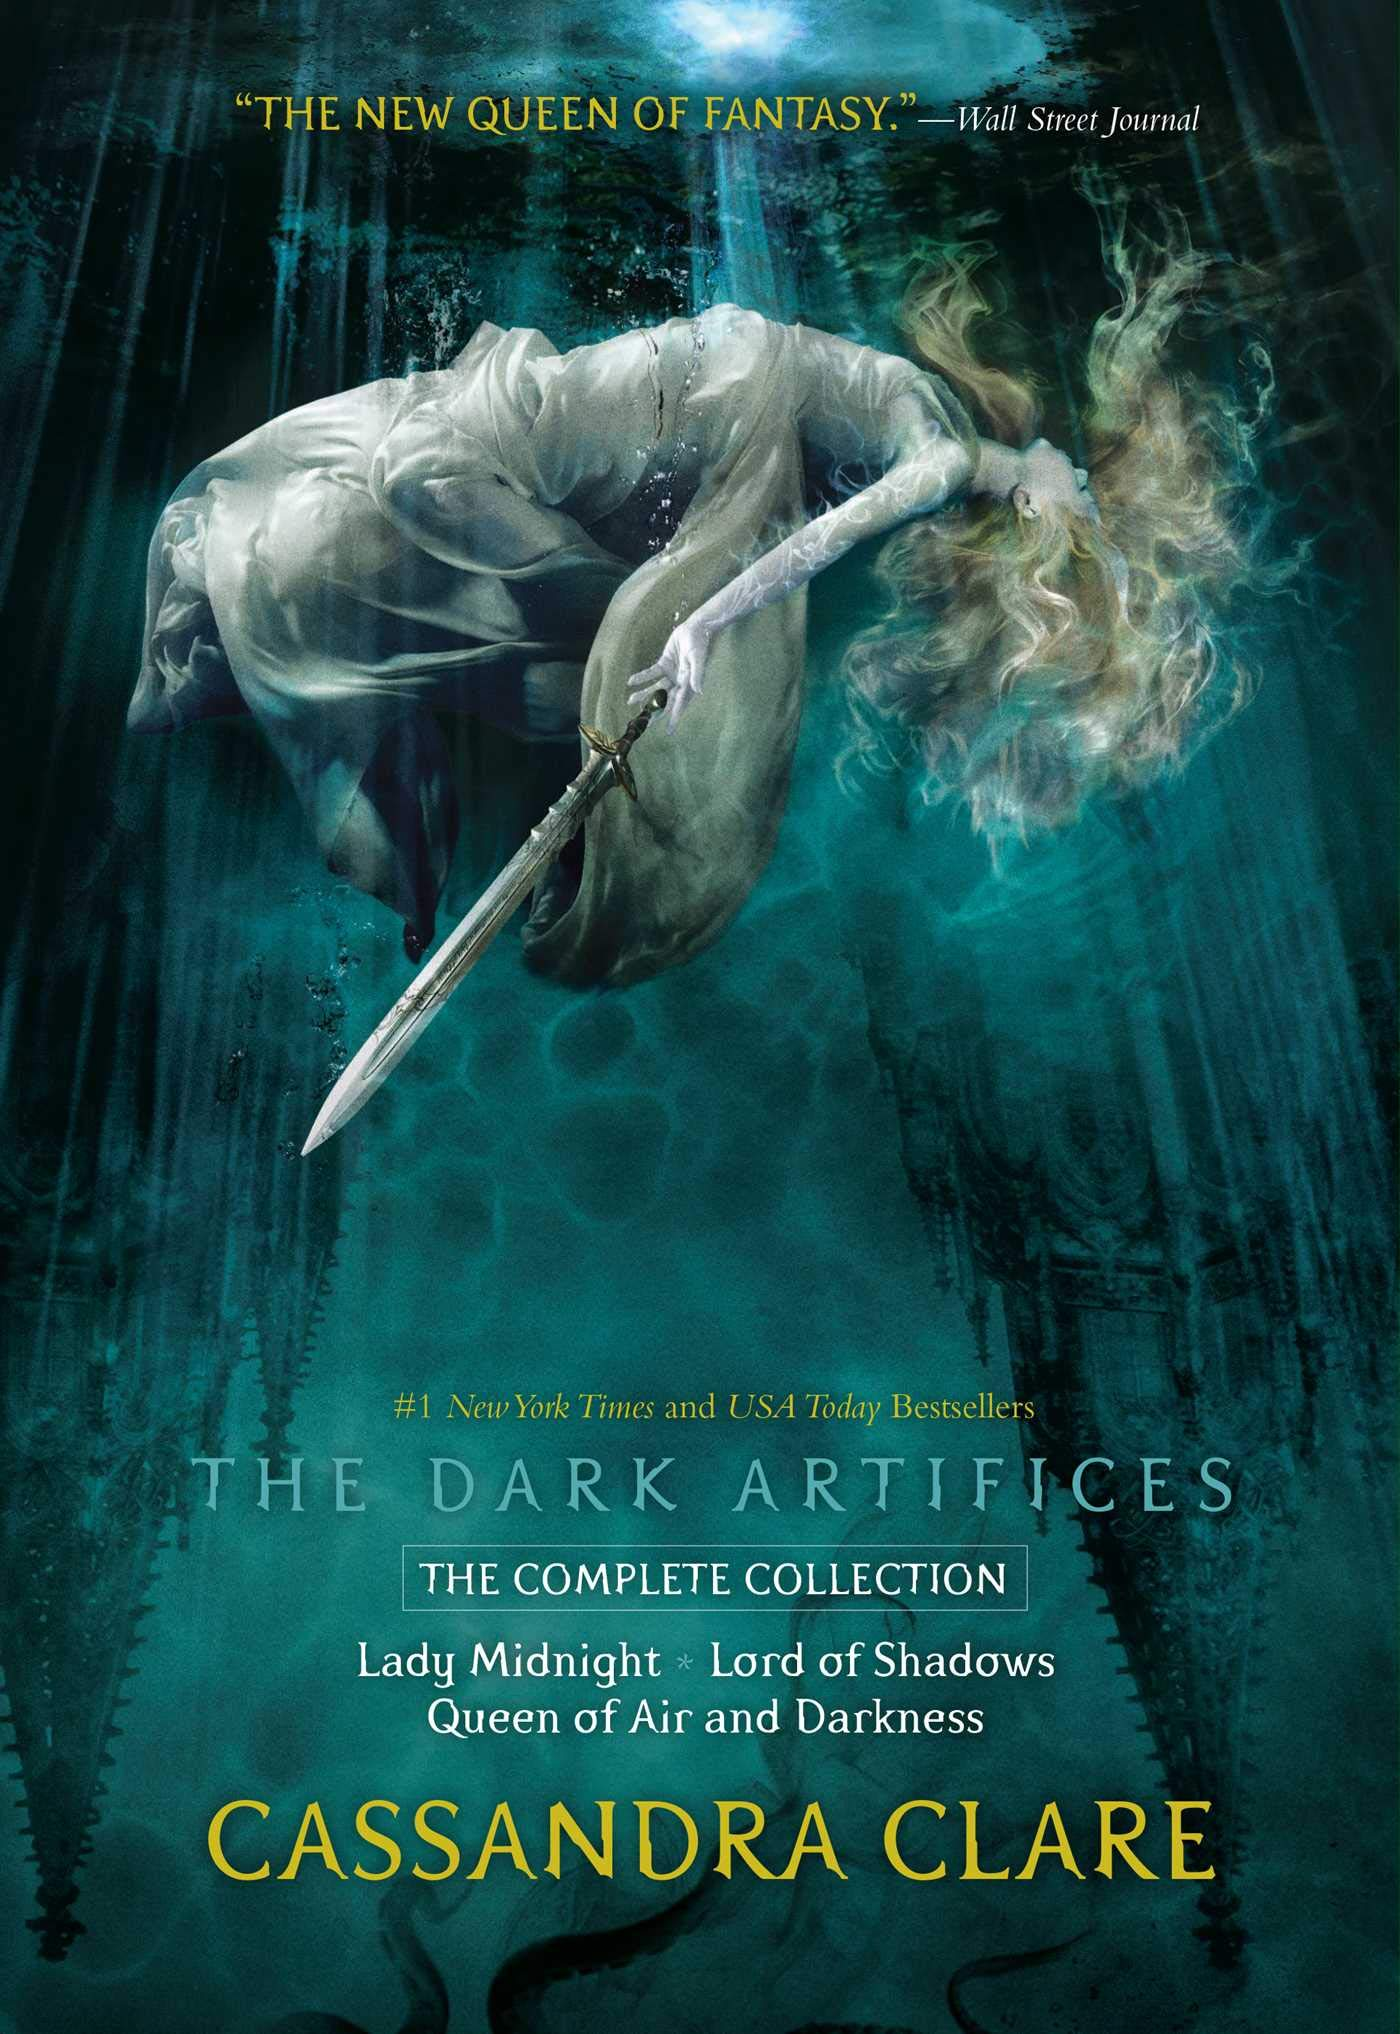 Amazon.com: The Dark Artifices, the Complete Collection: Lady ...